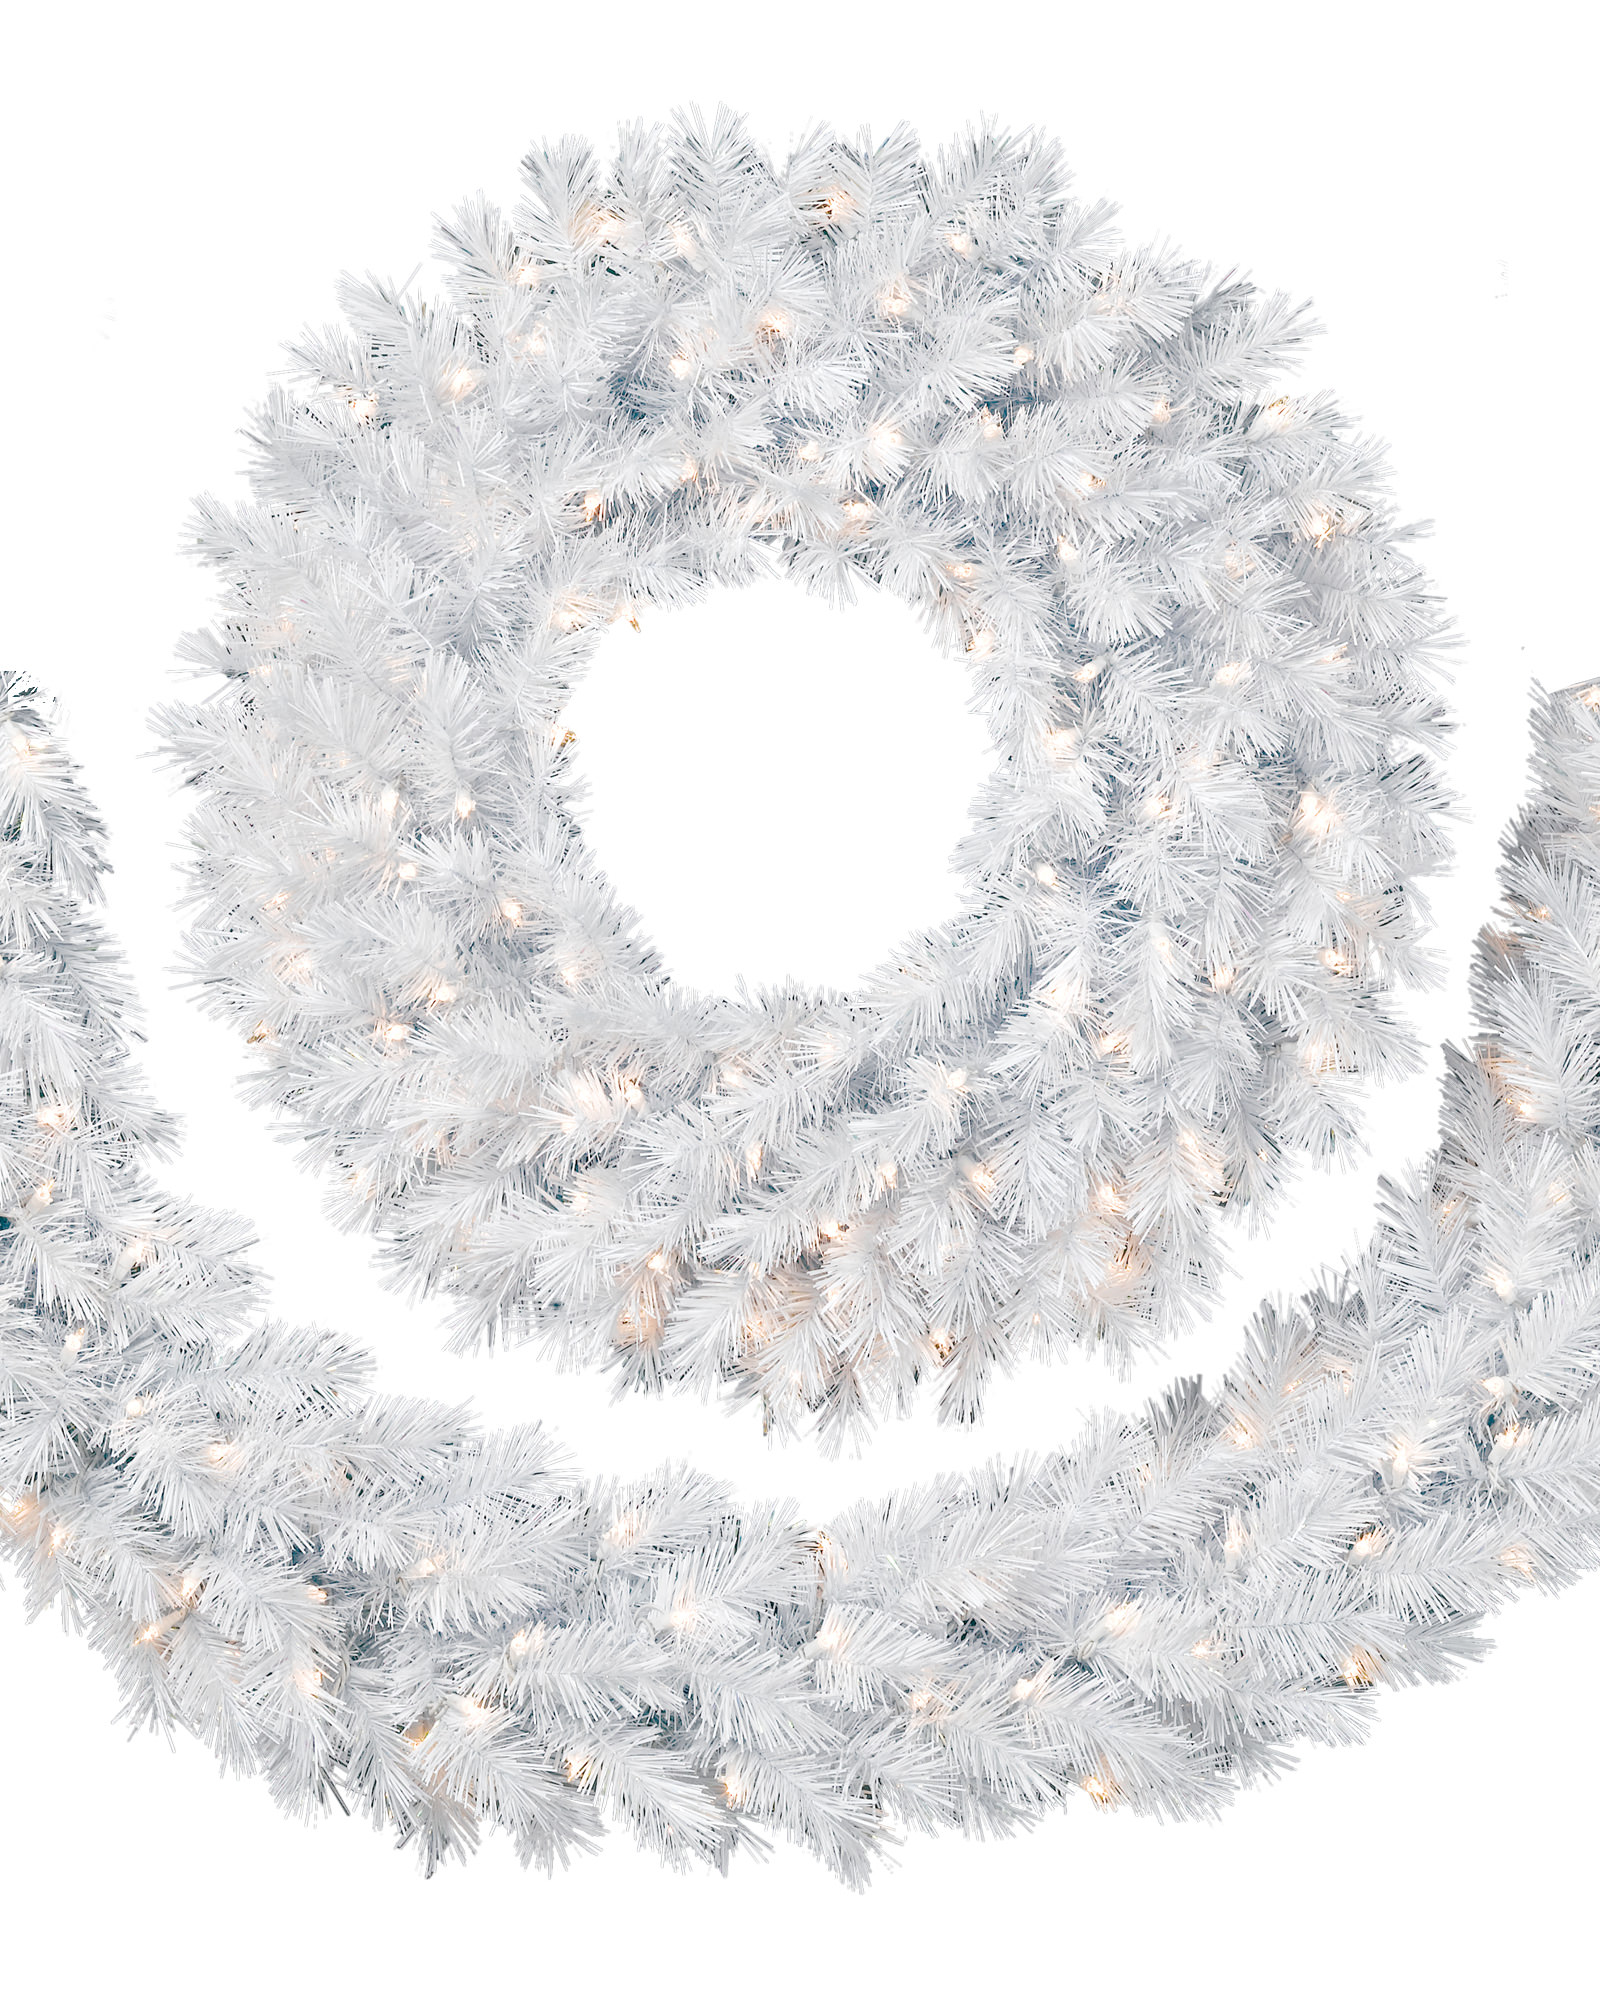 Winter White Wreath.